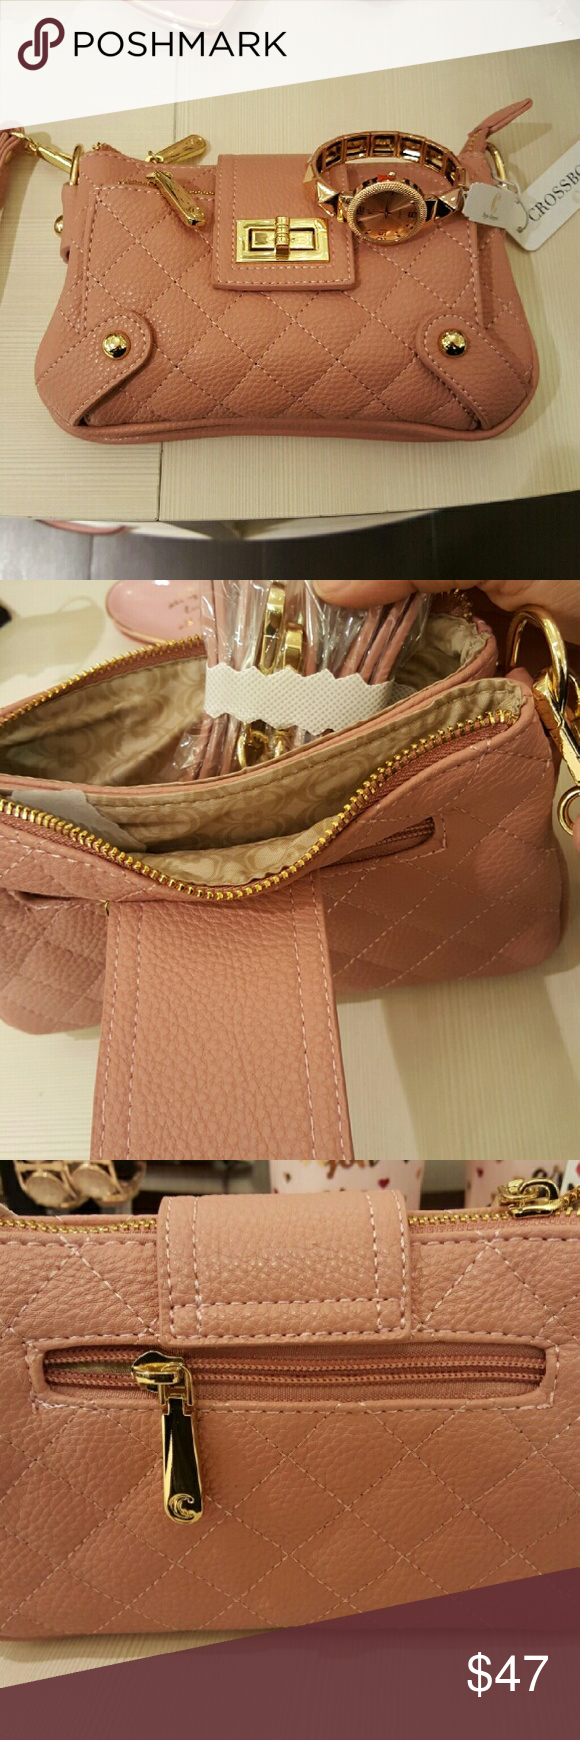 Rose gold convertible crossbody Brand new with tags Charming Charlies clutch bag. With removeble strap that converts it to a crossbody Charming Charlie Bags Clutches & Wristlets